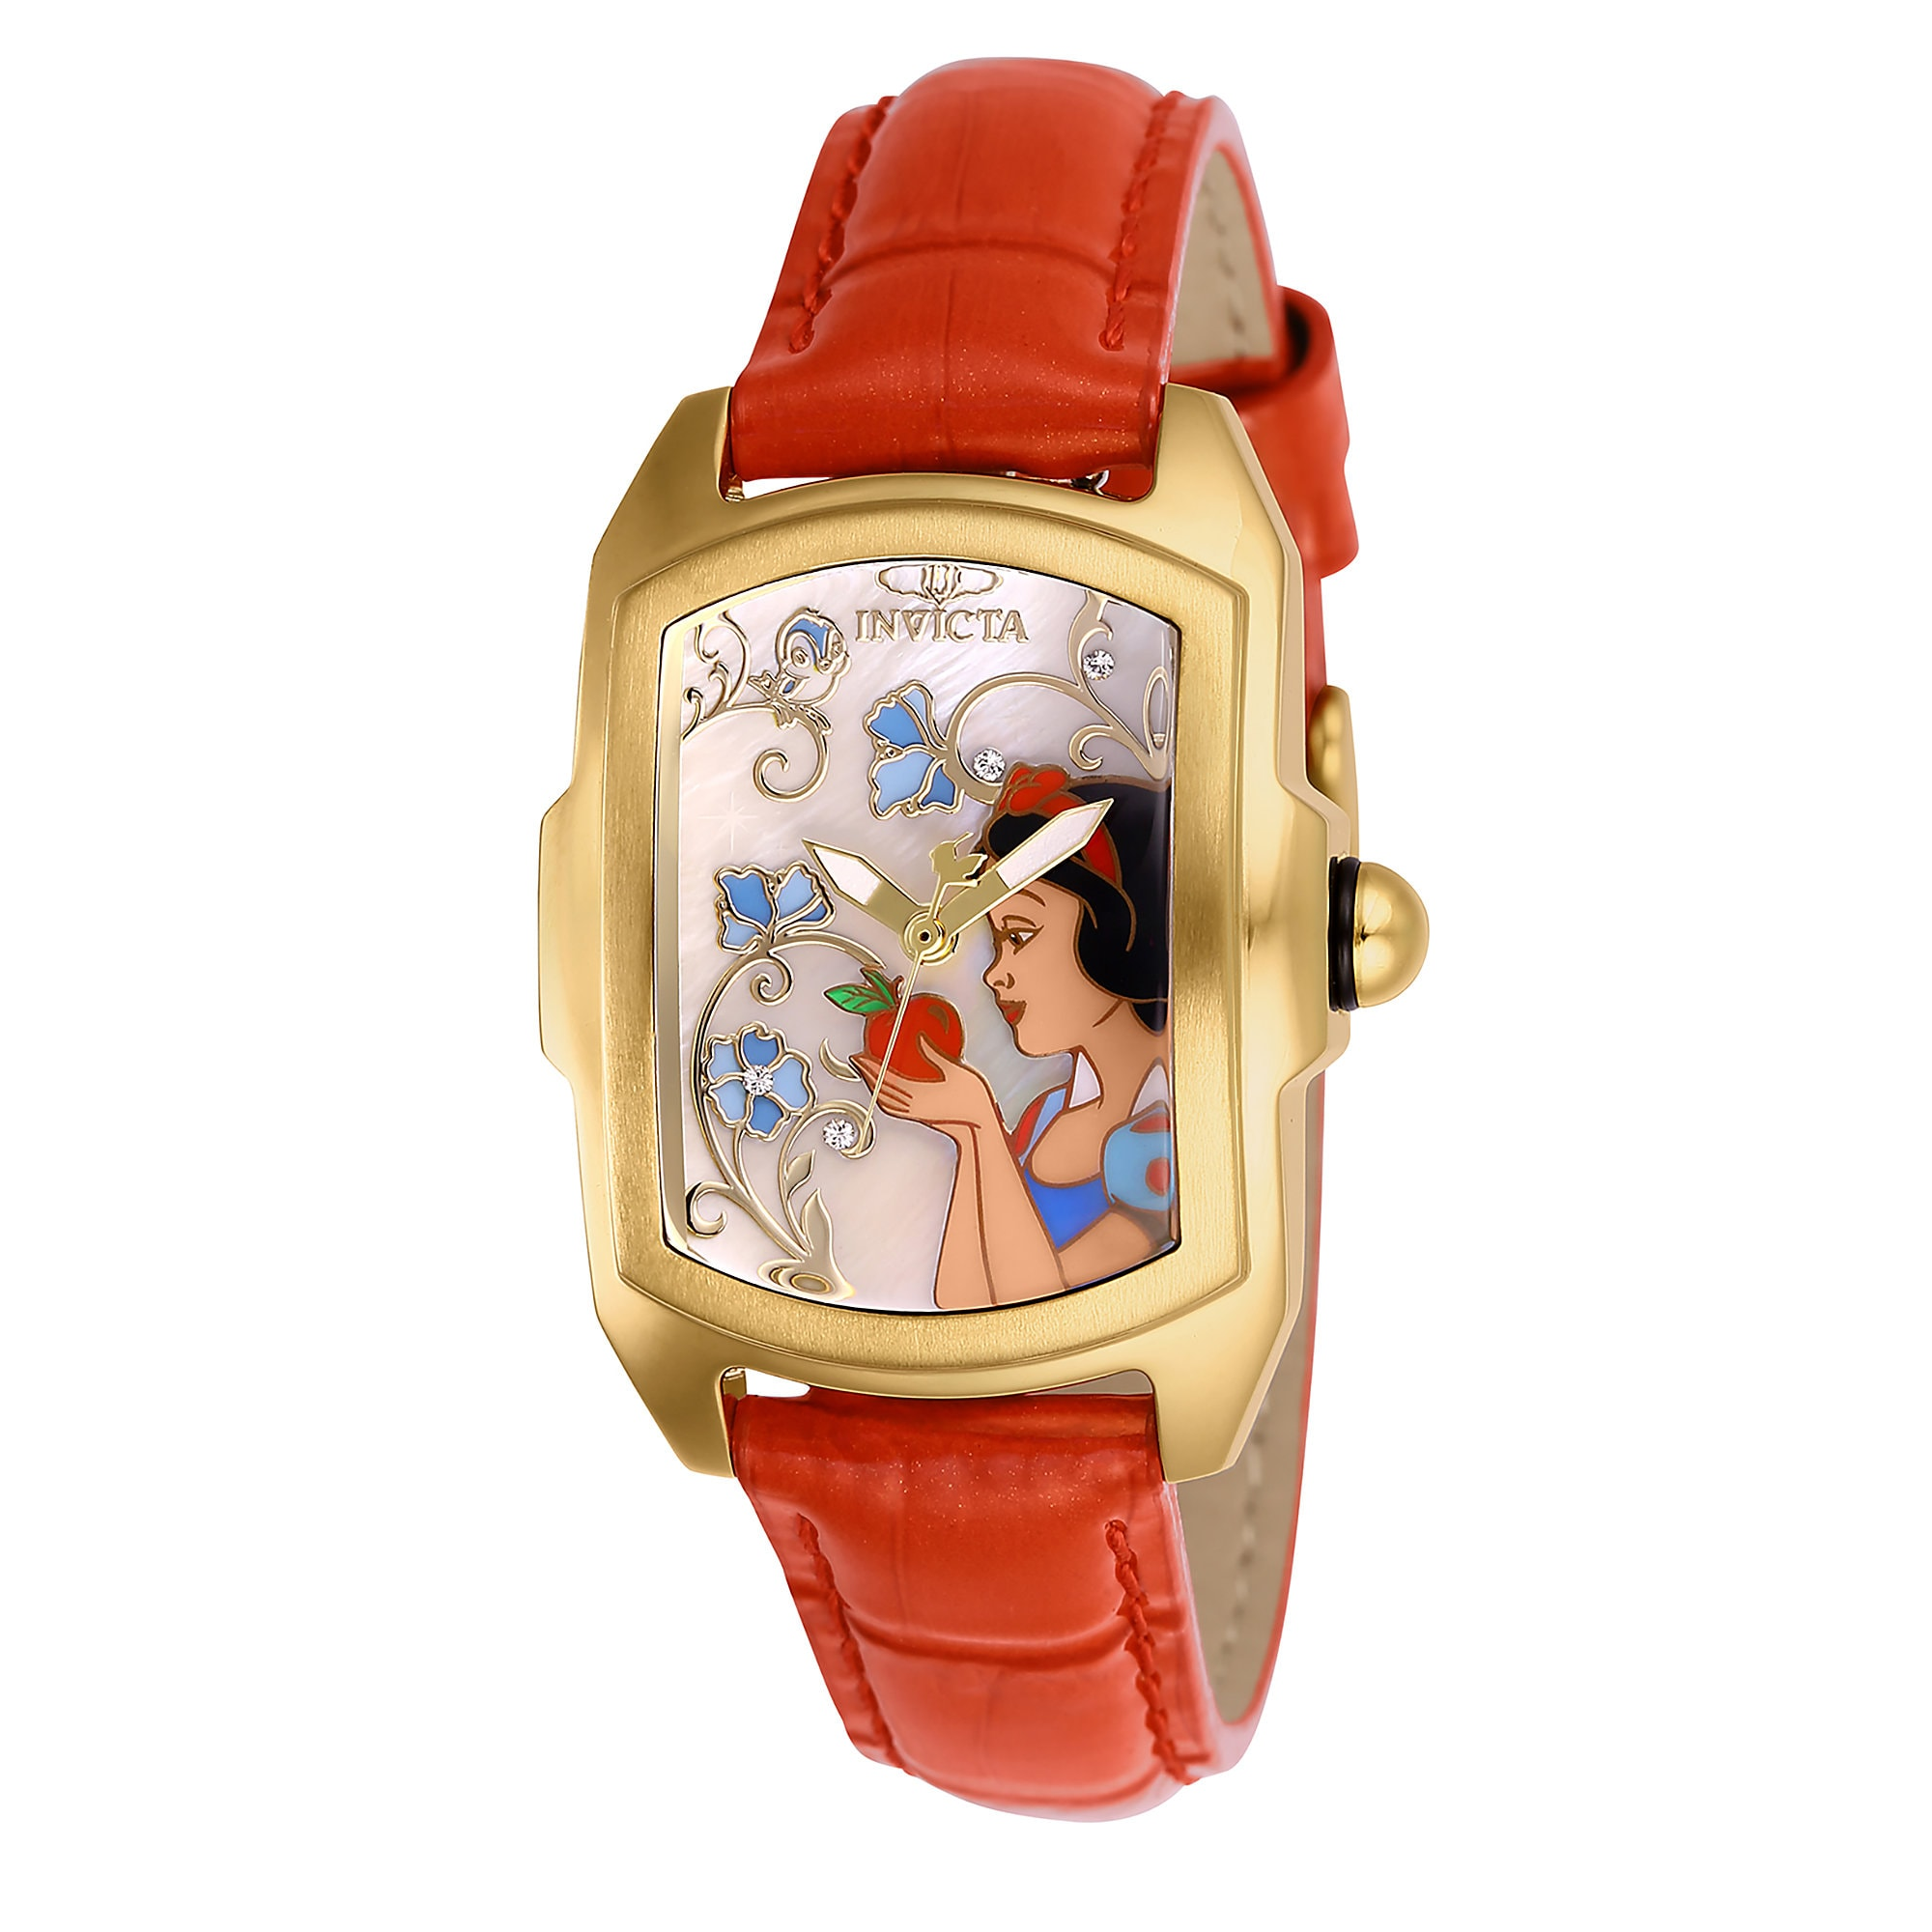 Snow White Watch for Women by INVICTA - Limited Edition